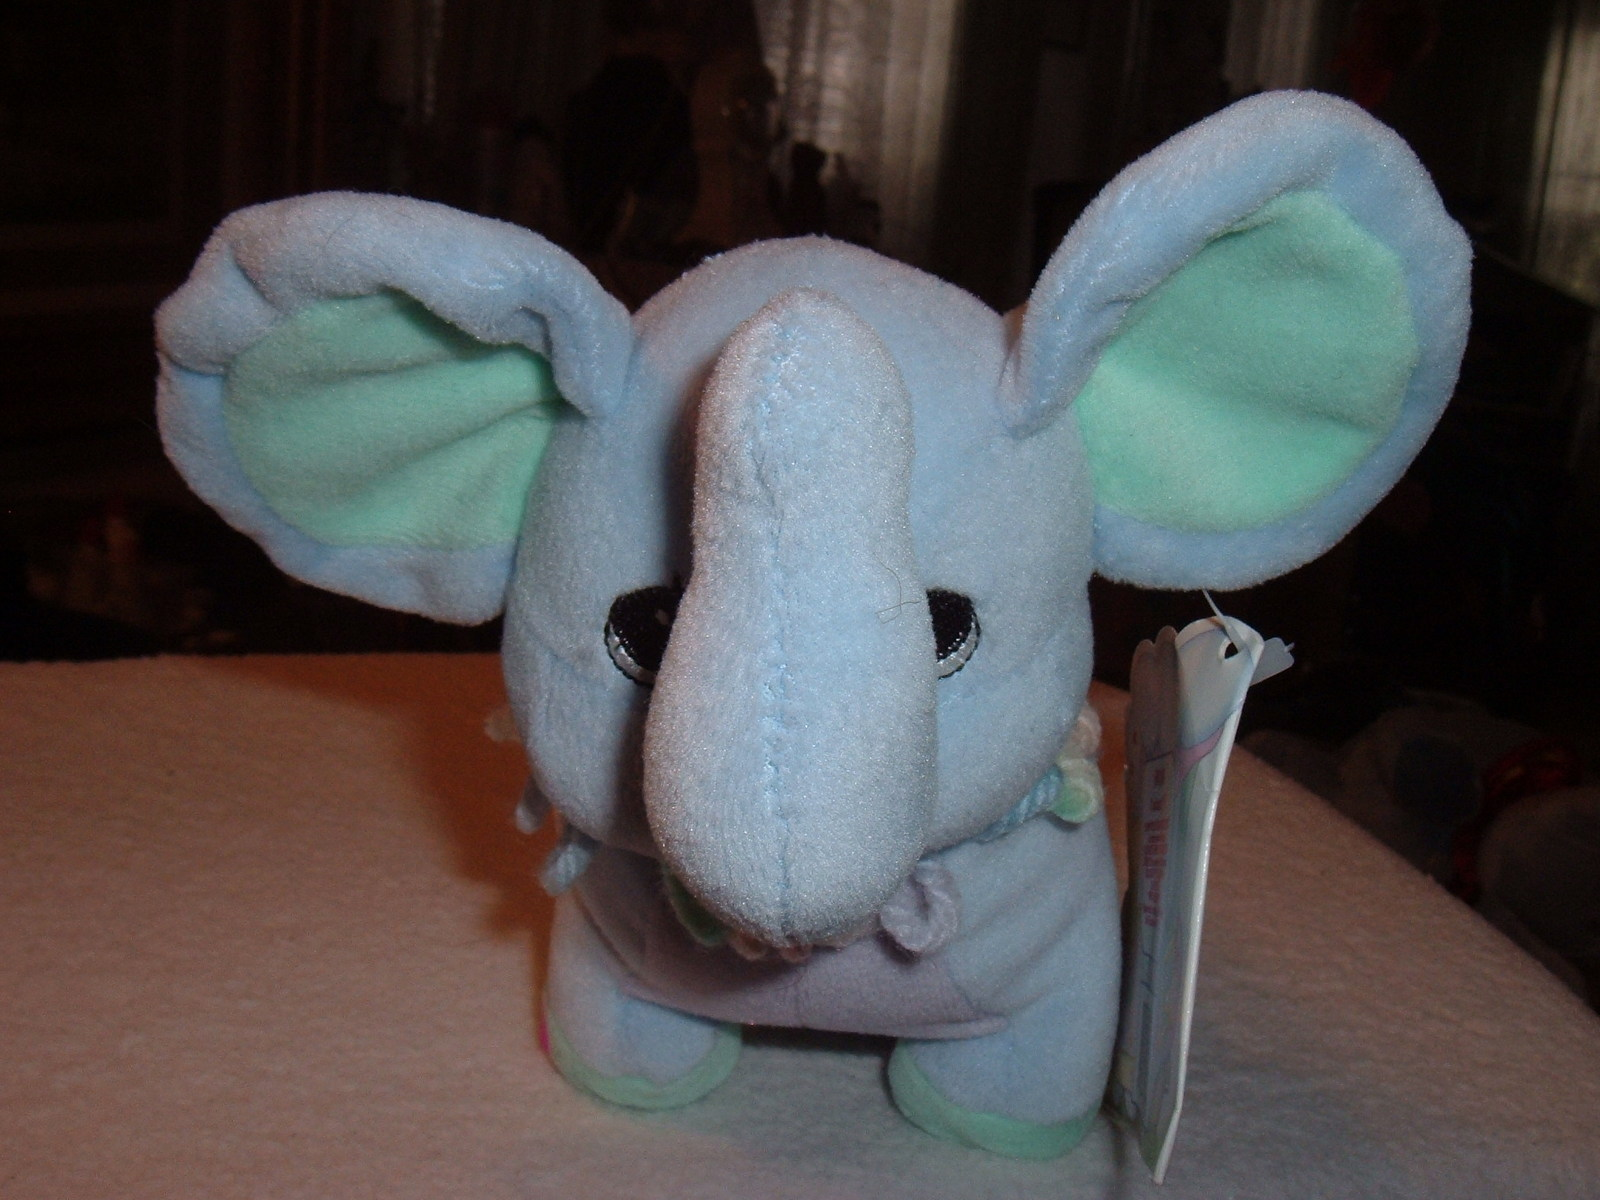 Precious Moments Tender Tails Age 4 Elephant Plush Stuffed Toy Doll Animal w/Tag image 5